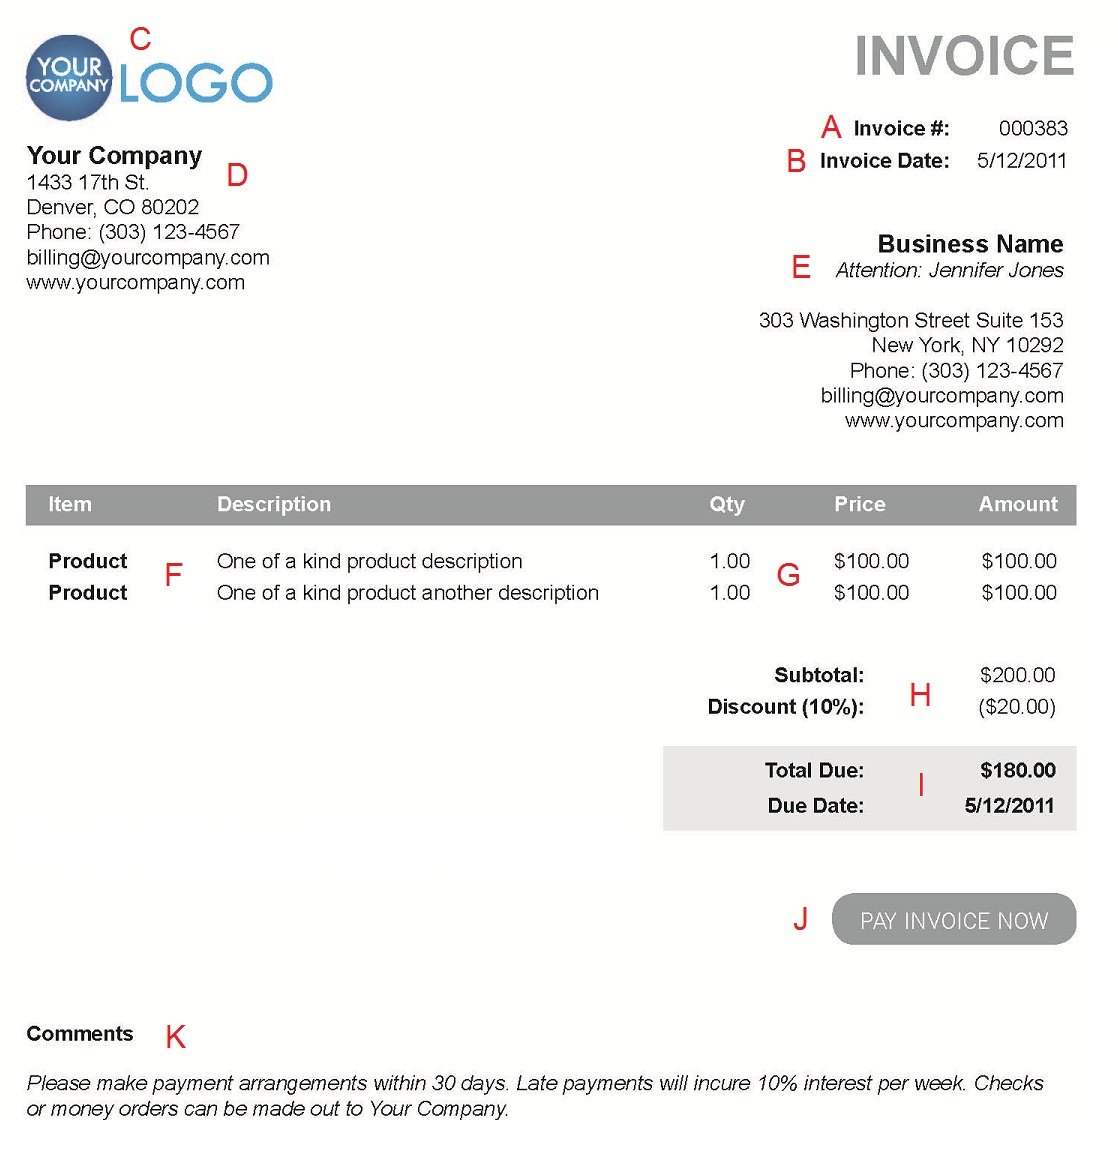 Usdgus  Unusual The  Different Sections Of An Electronic Payment Invoice With Inspiring A  With Alluring Official Invoice Template Also Form Of Invoice In Addition Invoice Template Ai And Opentext Vendor Invoice Management As Well As Plumber Invoice Template Additionally Accounting Invoice Template From Paysimplecom With Usdgus  Inspiring The  Different Sections Of An Electronic Payment Invoice With Alluring A  And Unusual Official Invoice Template Also Form Of Invoice In Addition Invoice Template Ai From Paysimplecom